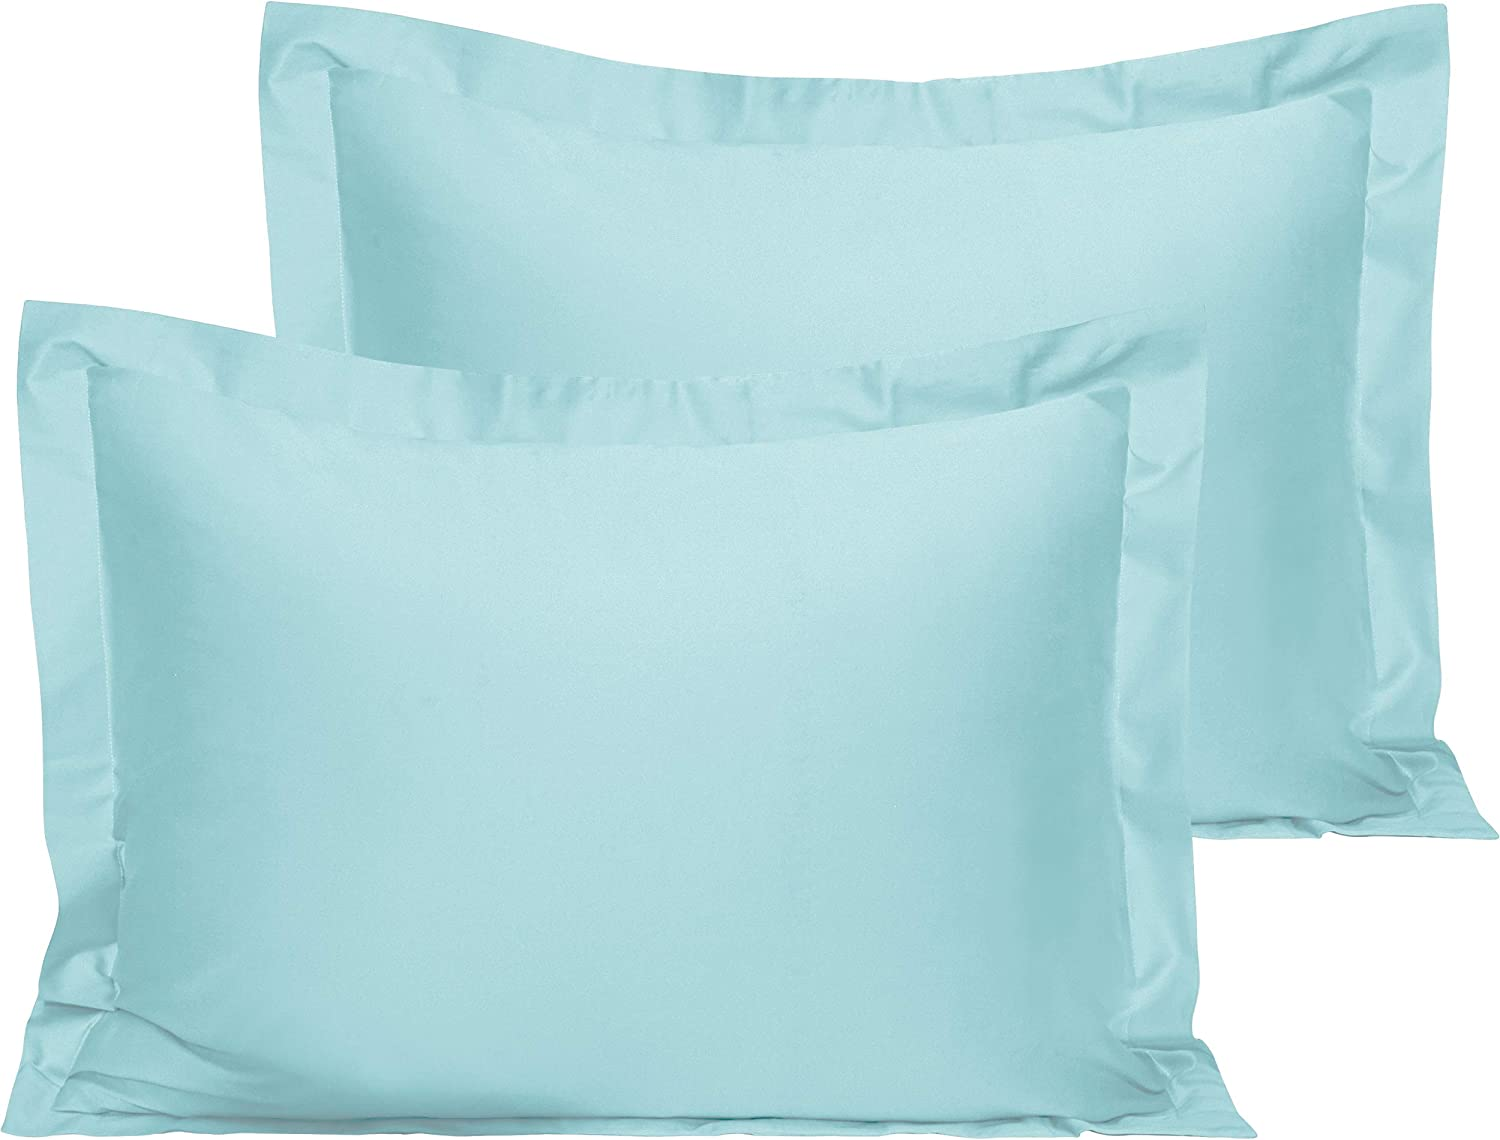 NTBAY 500 Thread Count 2 Pack Cotton Pillow Shams, Super Soft and Breathable Standard Pillow Cases, 20 x 26 Inches, Aqua